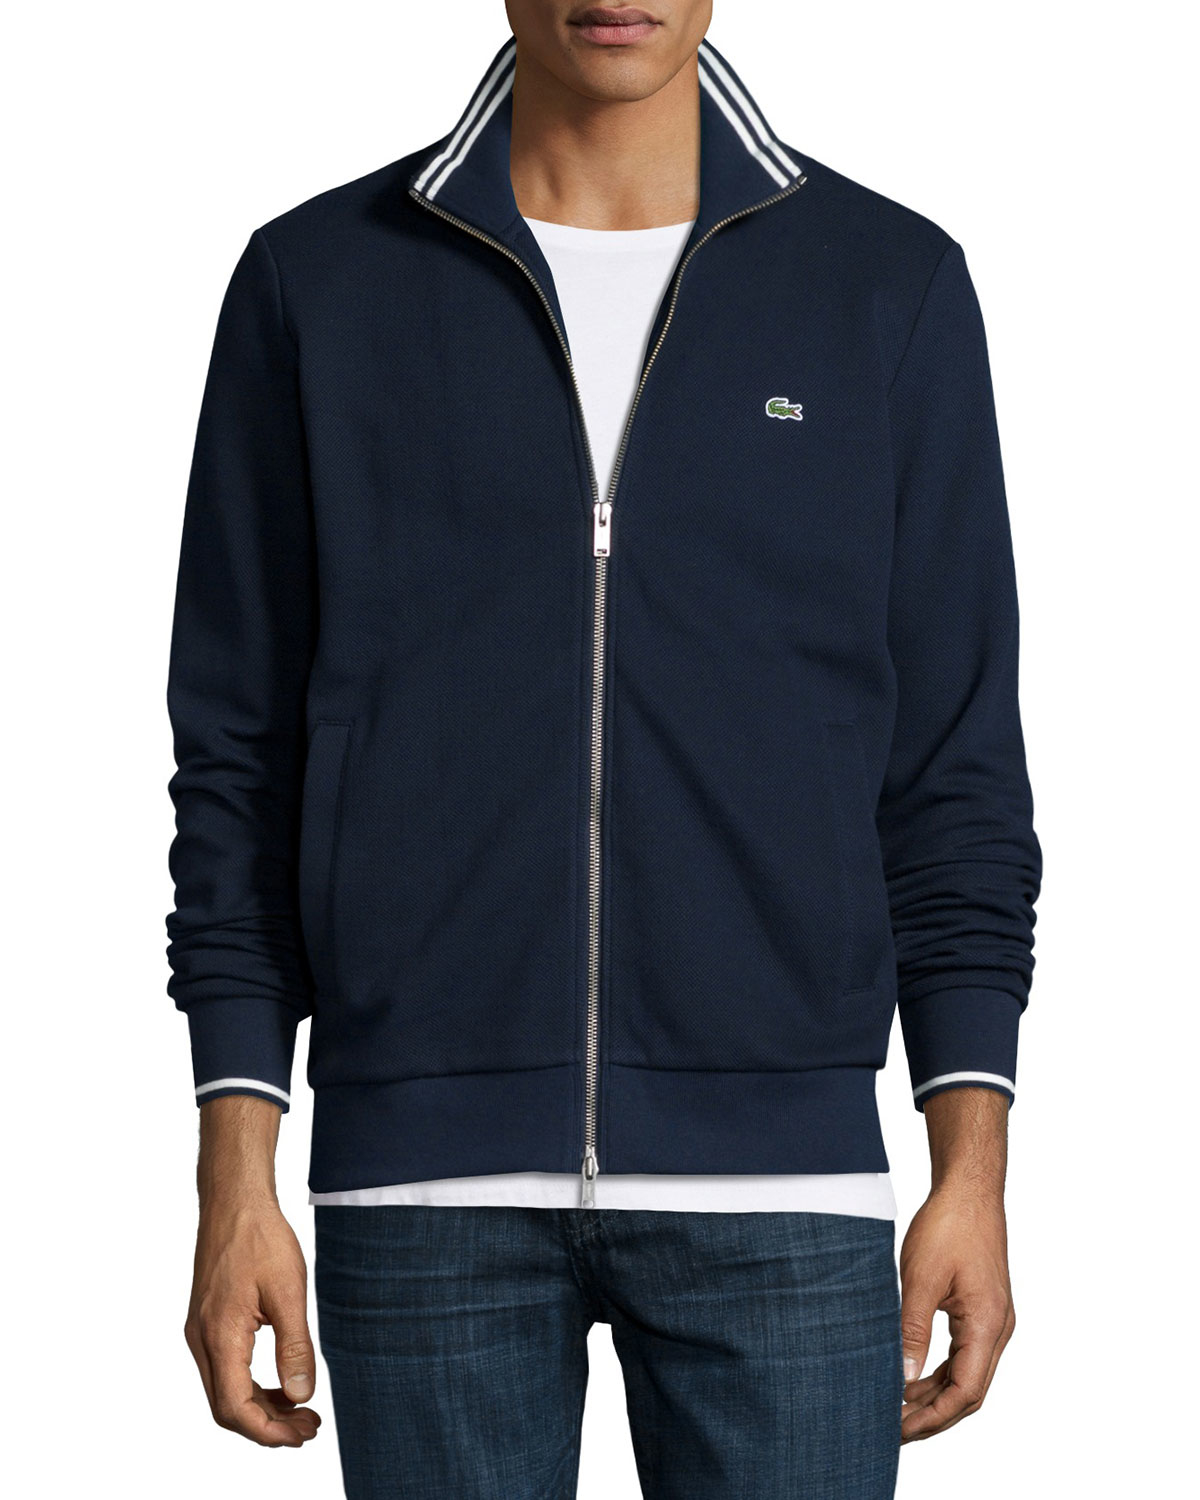 76a4e1cf732fd Lacoste Blue Full-zip Tipped Track Jacket for men